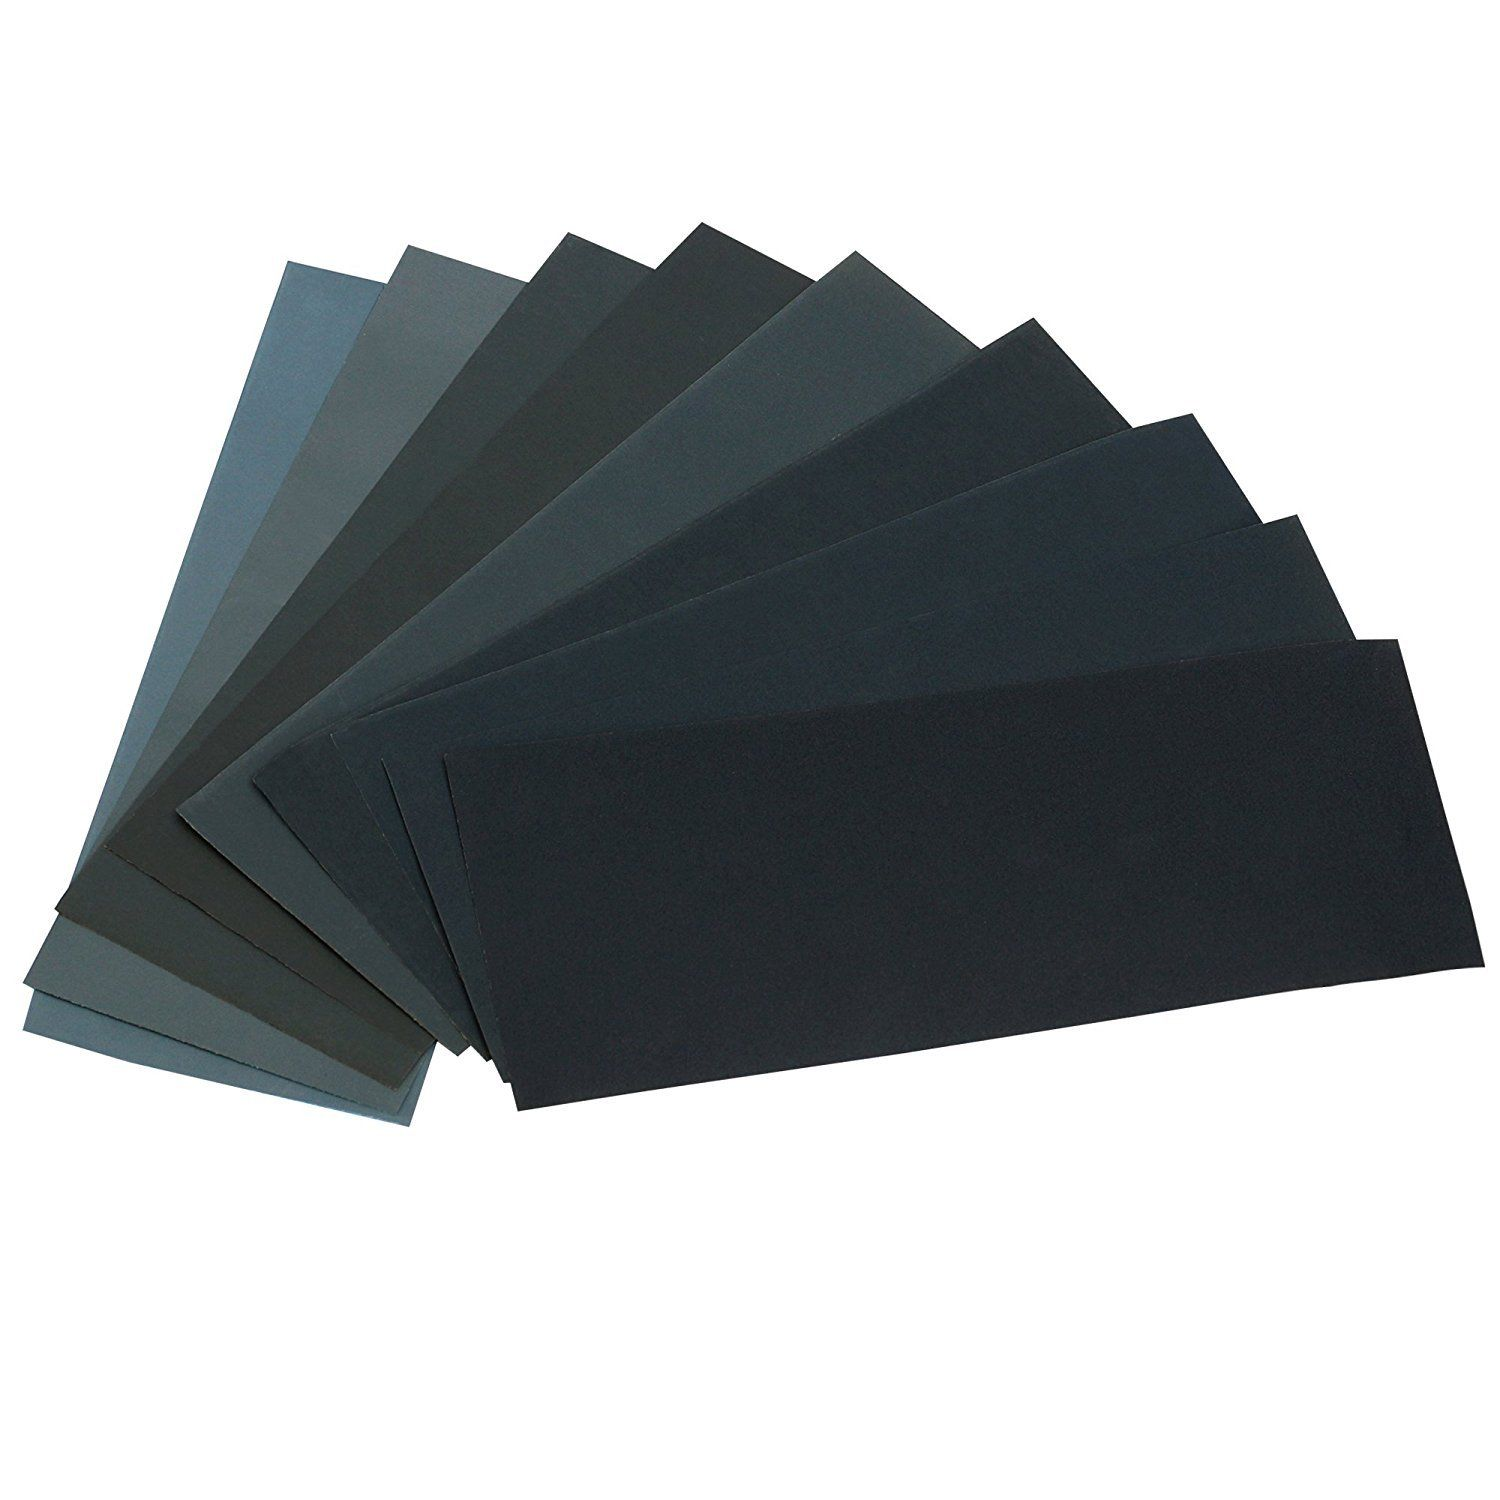 Dry Wet Sandpaper Assortment Gimars 9 x 3.6in Silicone Carbide 400 to 3000 Grit Sandpaper... by Gimars